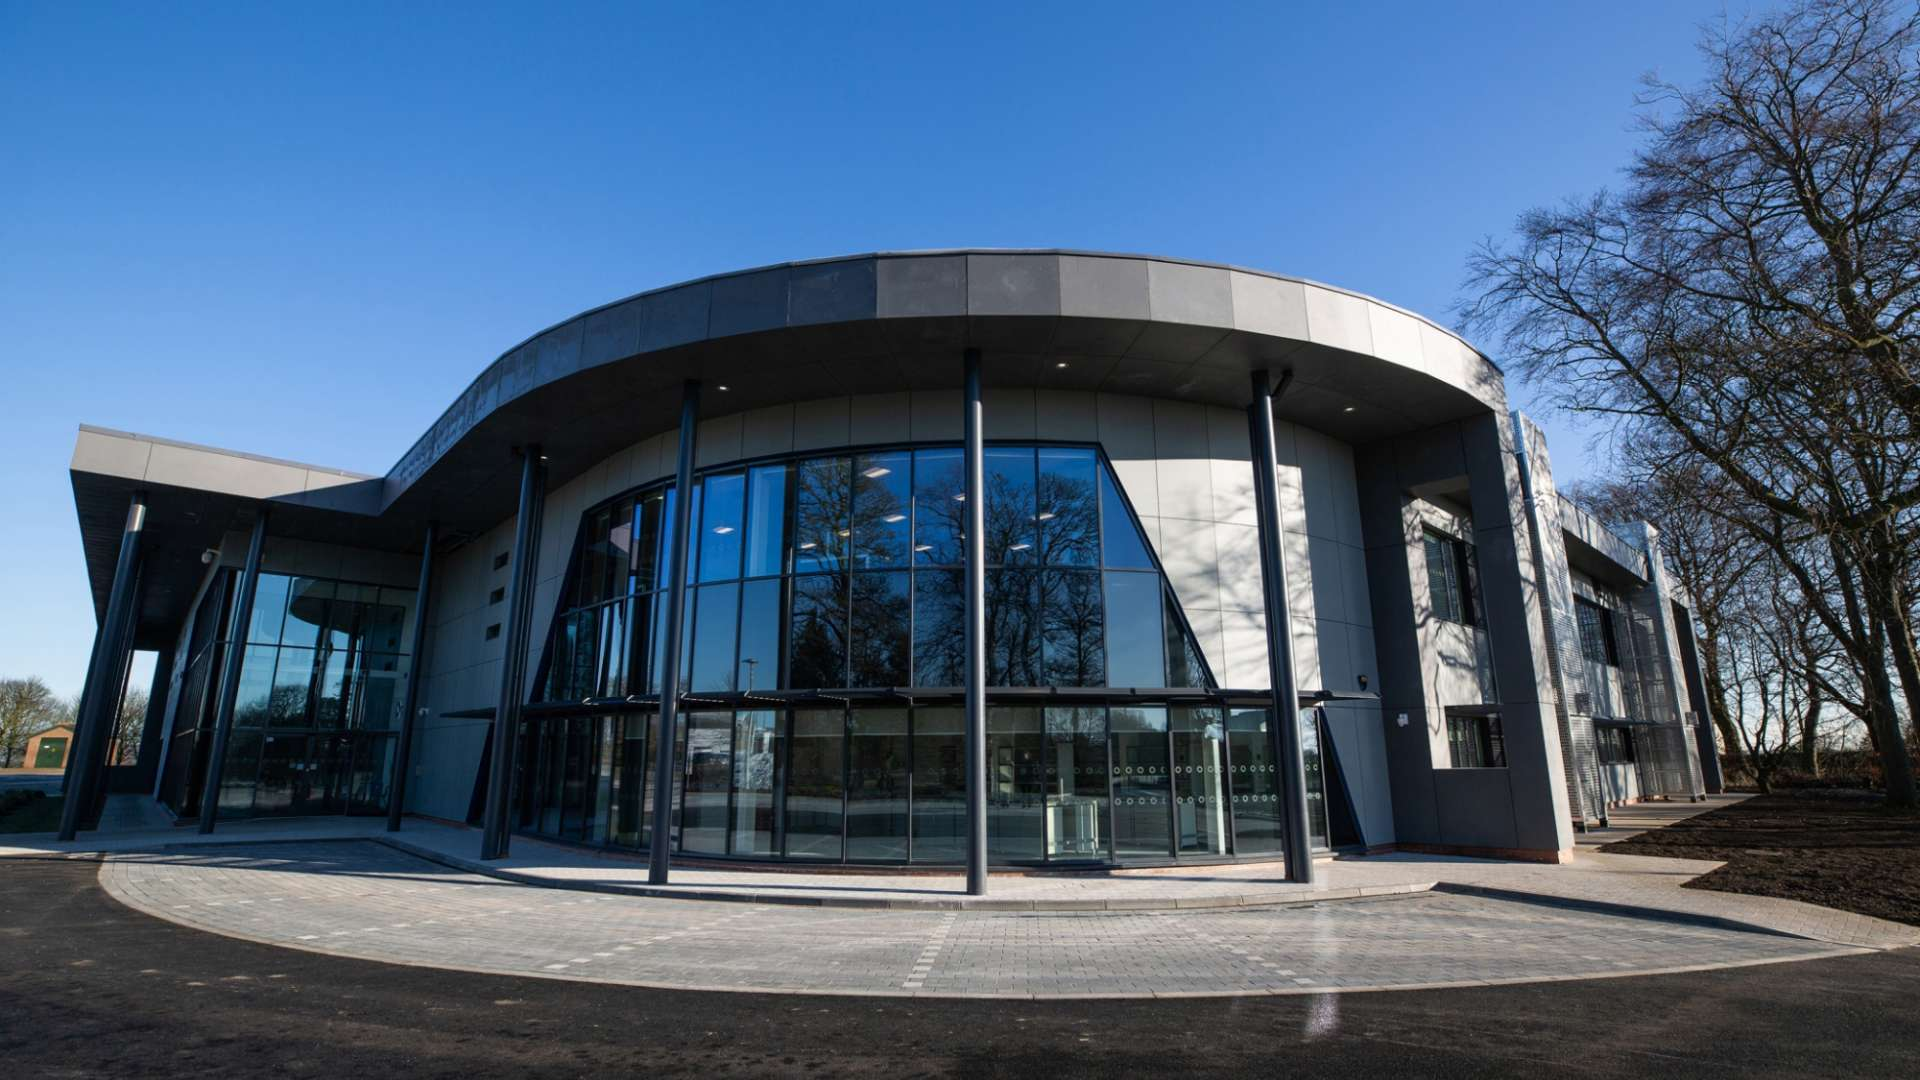 A photo of the National Healthcare Photonics Centre